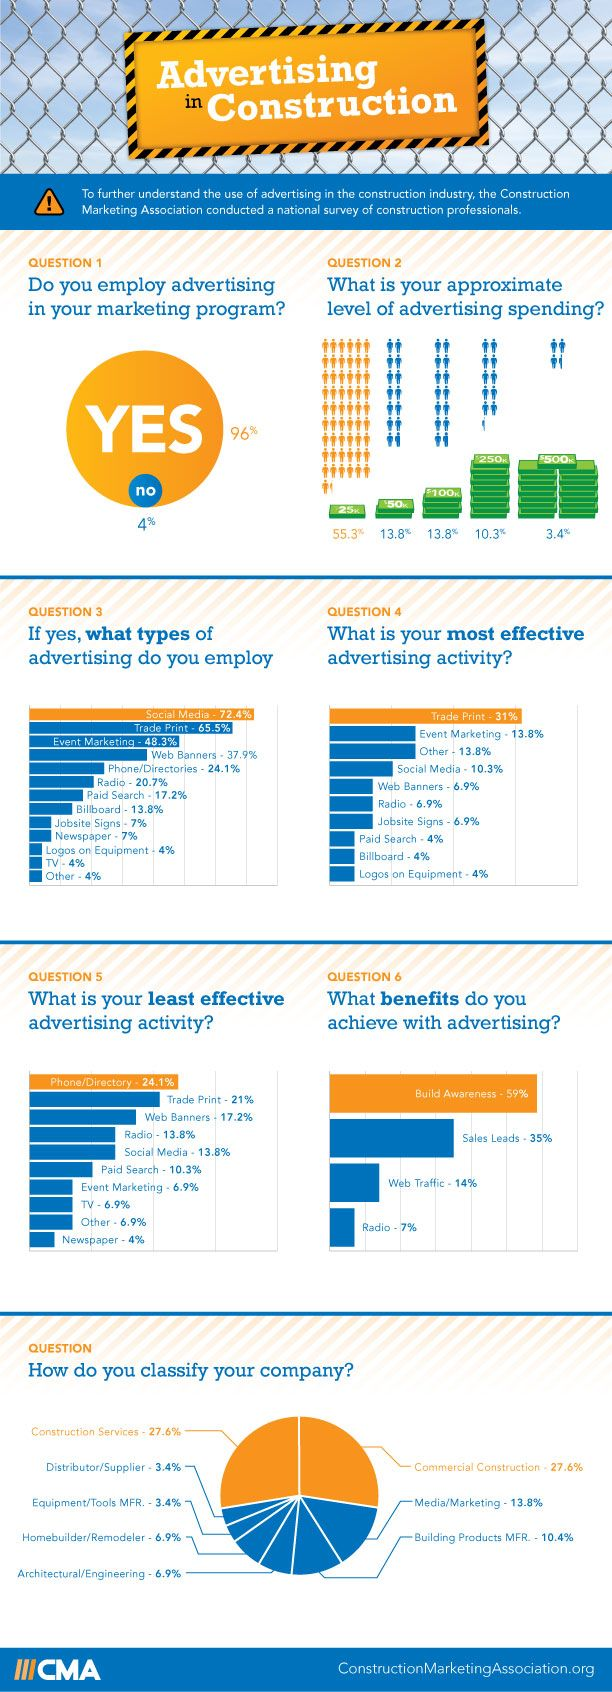 Advertising in Construction Infographic #advertising #construction #infographic